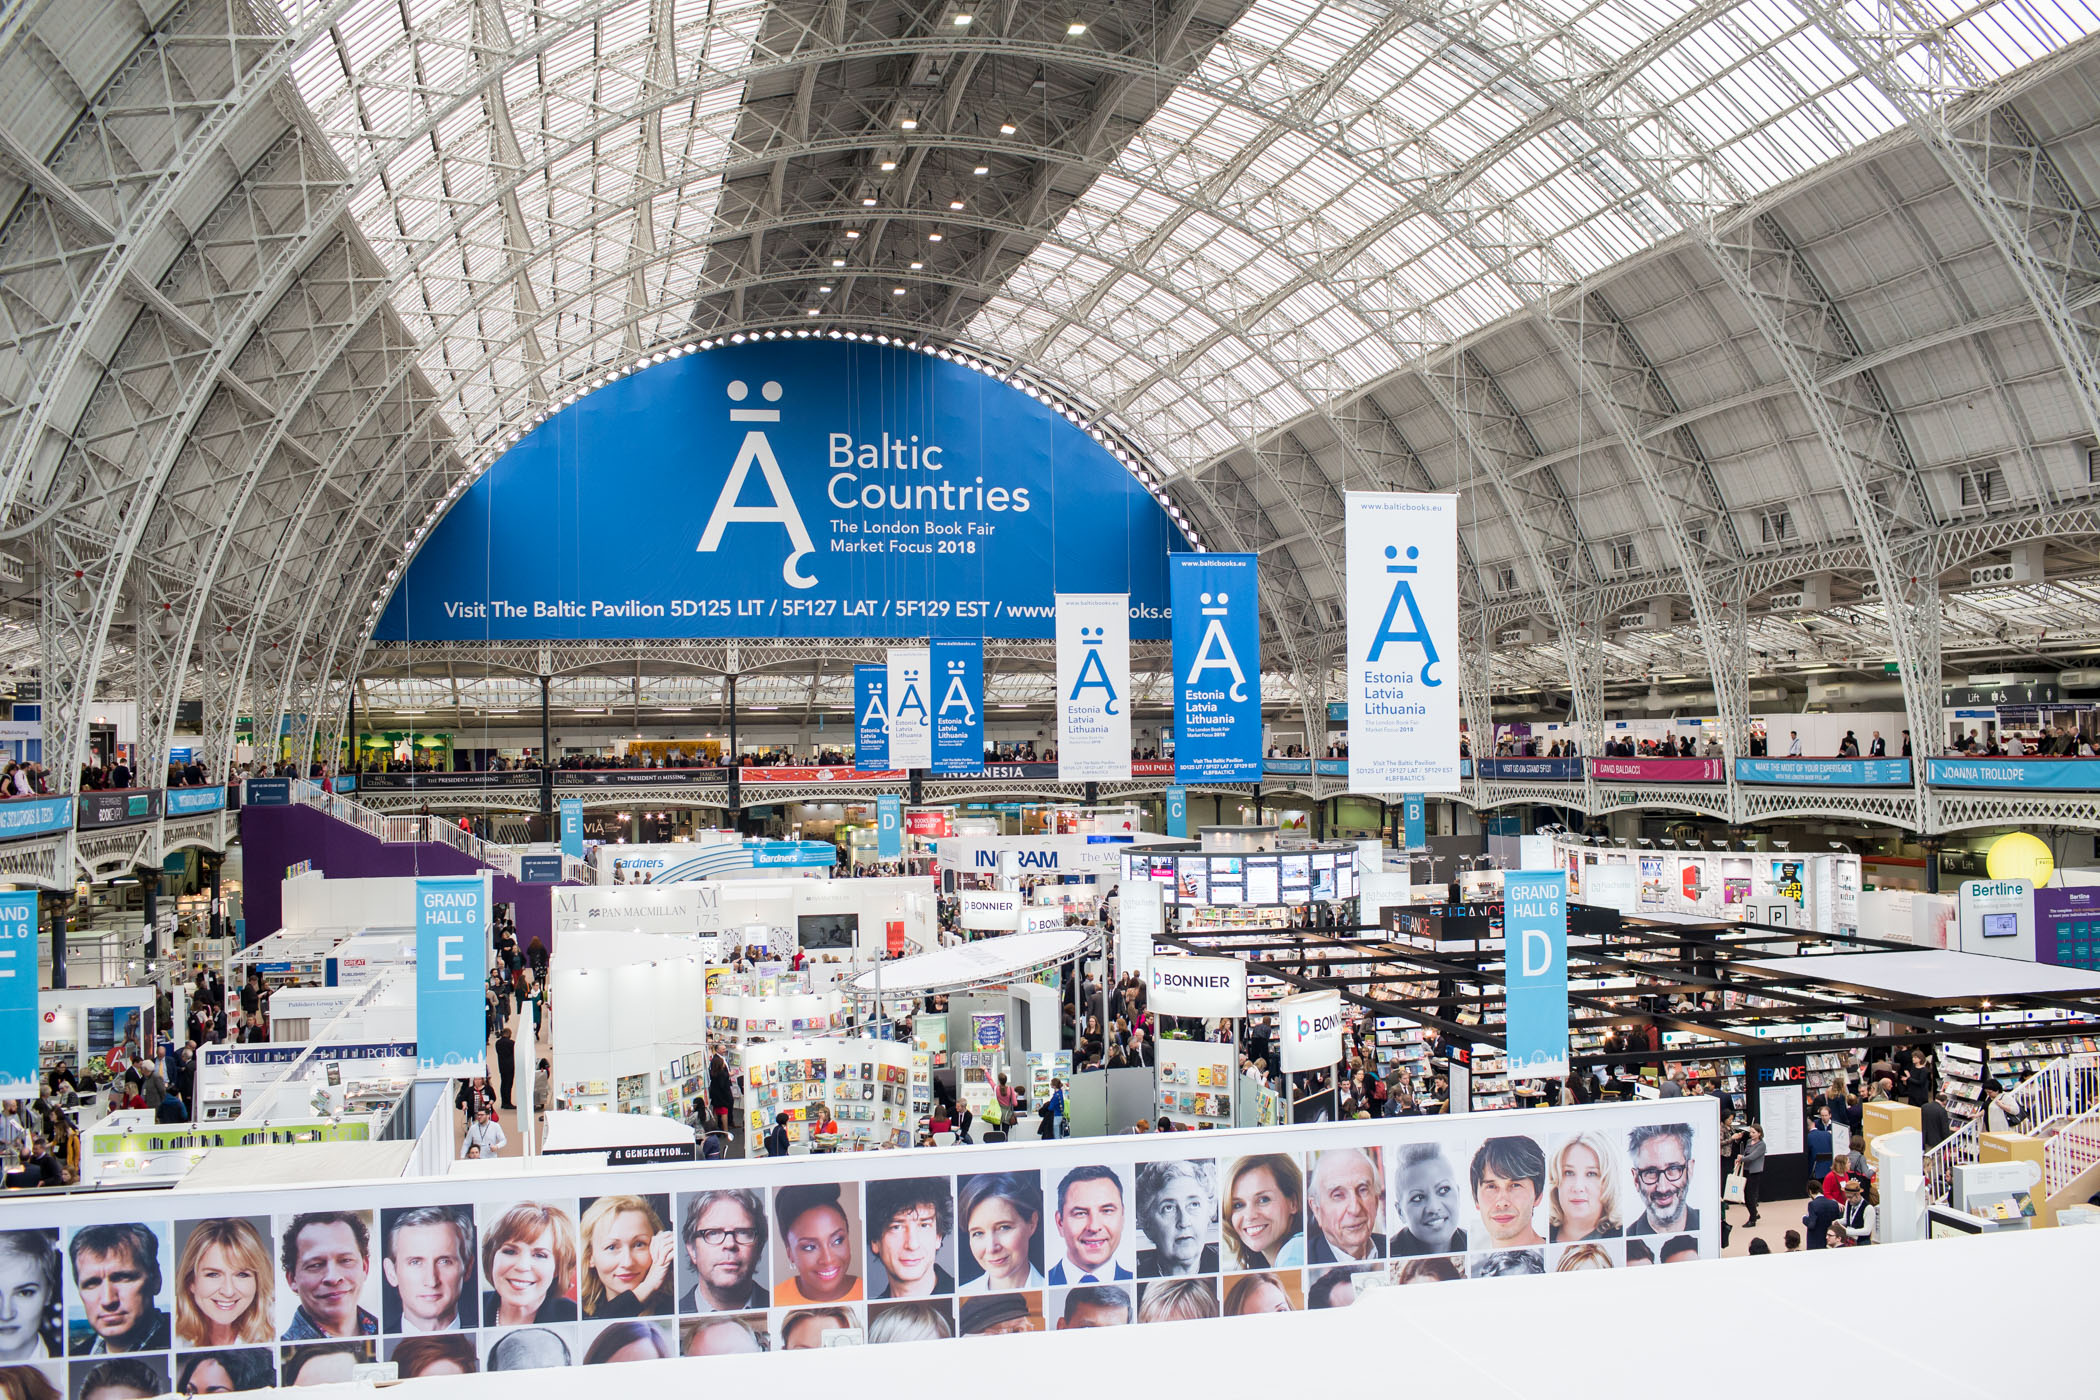 Lithuania at The London Book Fair Baltic Countries Market Focus Programme 2018: facts, figures and photos